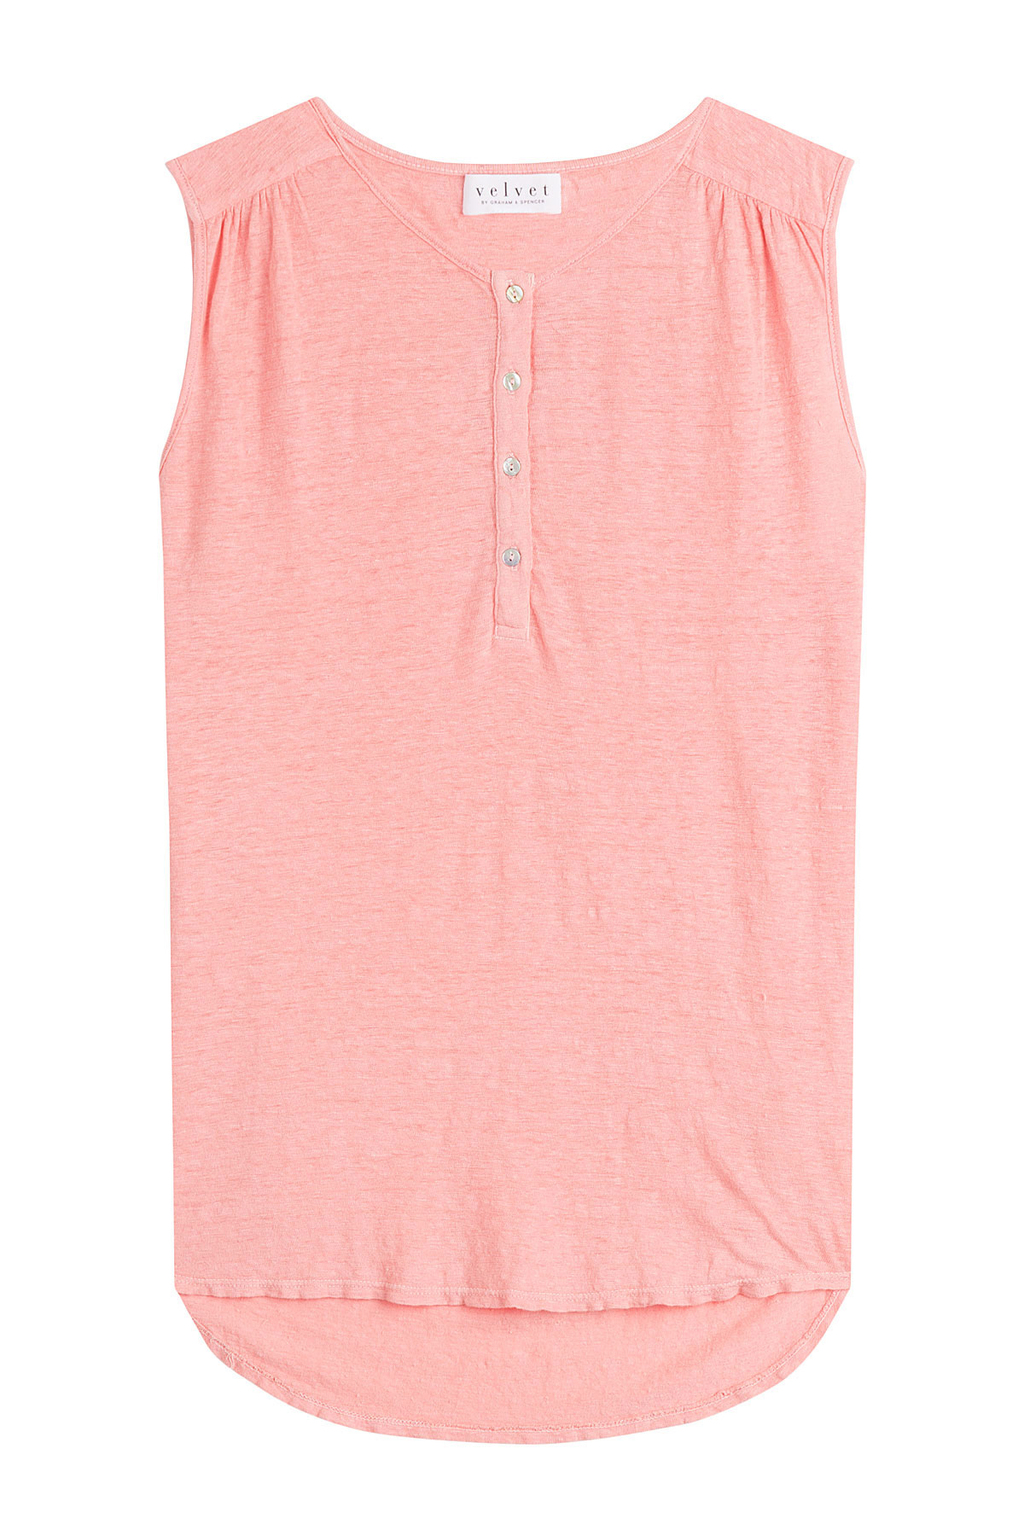 Sleeveless Linen Top - neckline: round neck; pattern: plain; sleeve style: sleeveless; predominant colour: pink; occasions: casual, creative work; length: standard; style: top; fibres: linen - 100%; fit: straight cut; shoulder detail: subtle shoulder detail; back detail: longer hem at back than at front; sleeve length: sleeveless; texture group: linen; pattern type: fabric; season: s/s 2016; wardrobe: highlight; embellishment location: bust